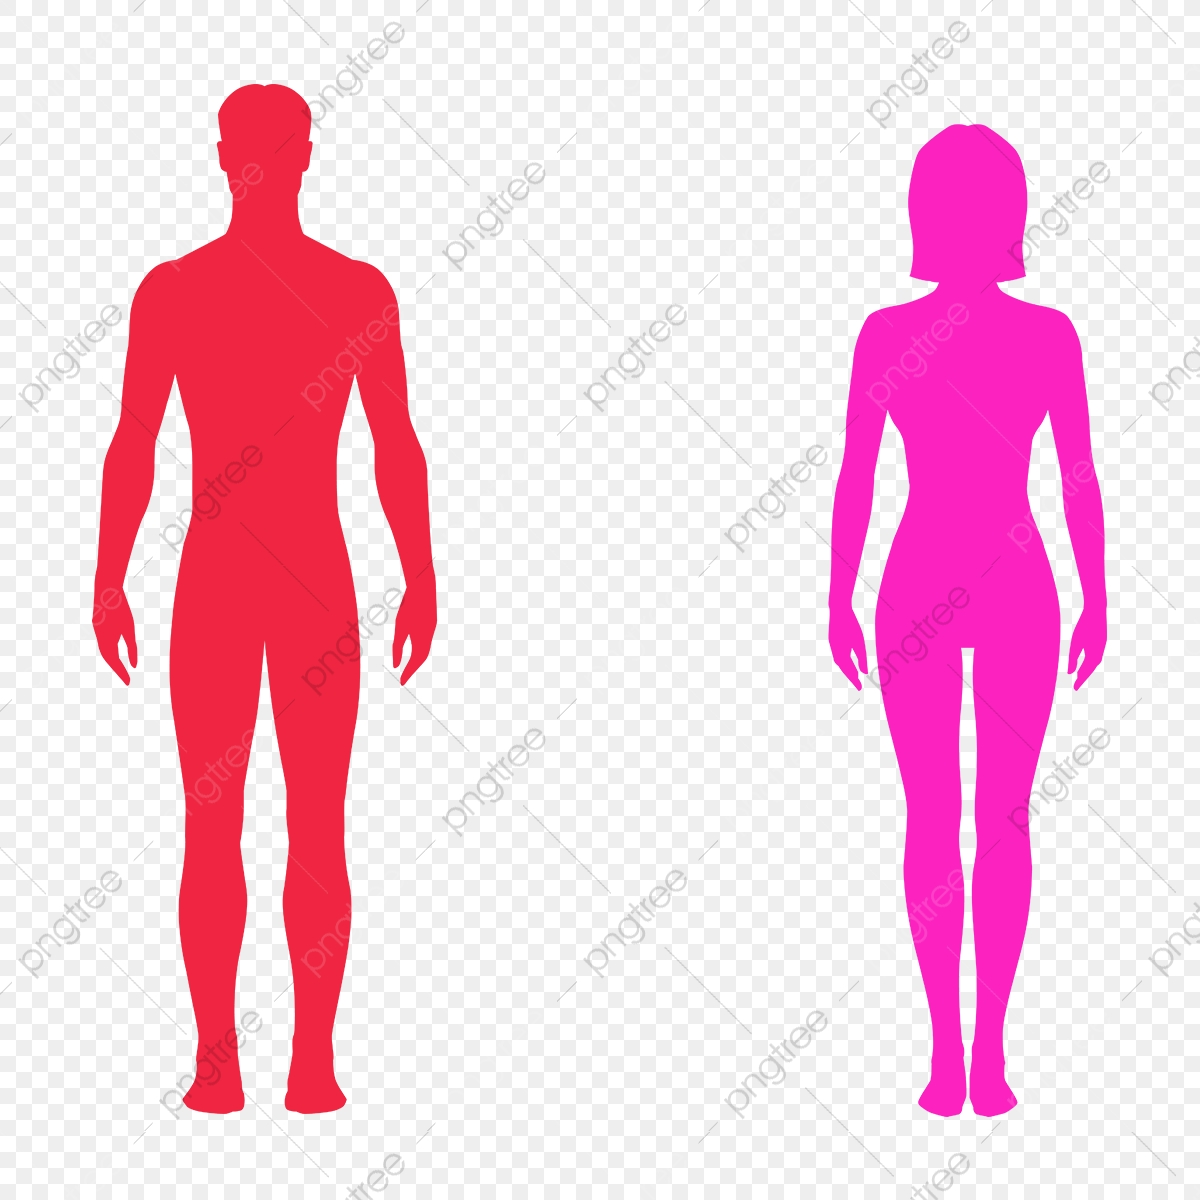 male female bodies body bodies png and vector with transparent background for free download https pngtree com freepng male female bodies 4124284 html